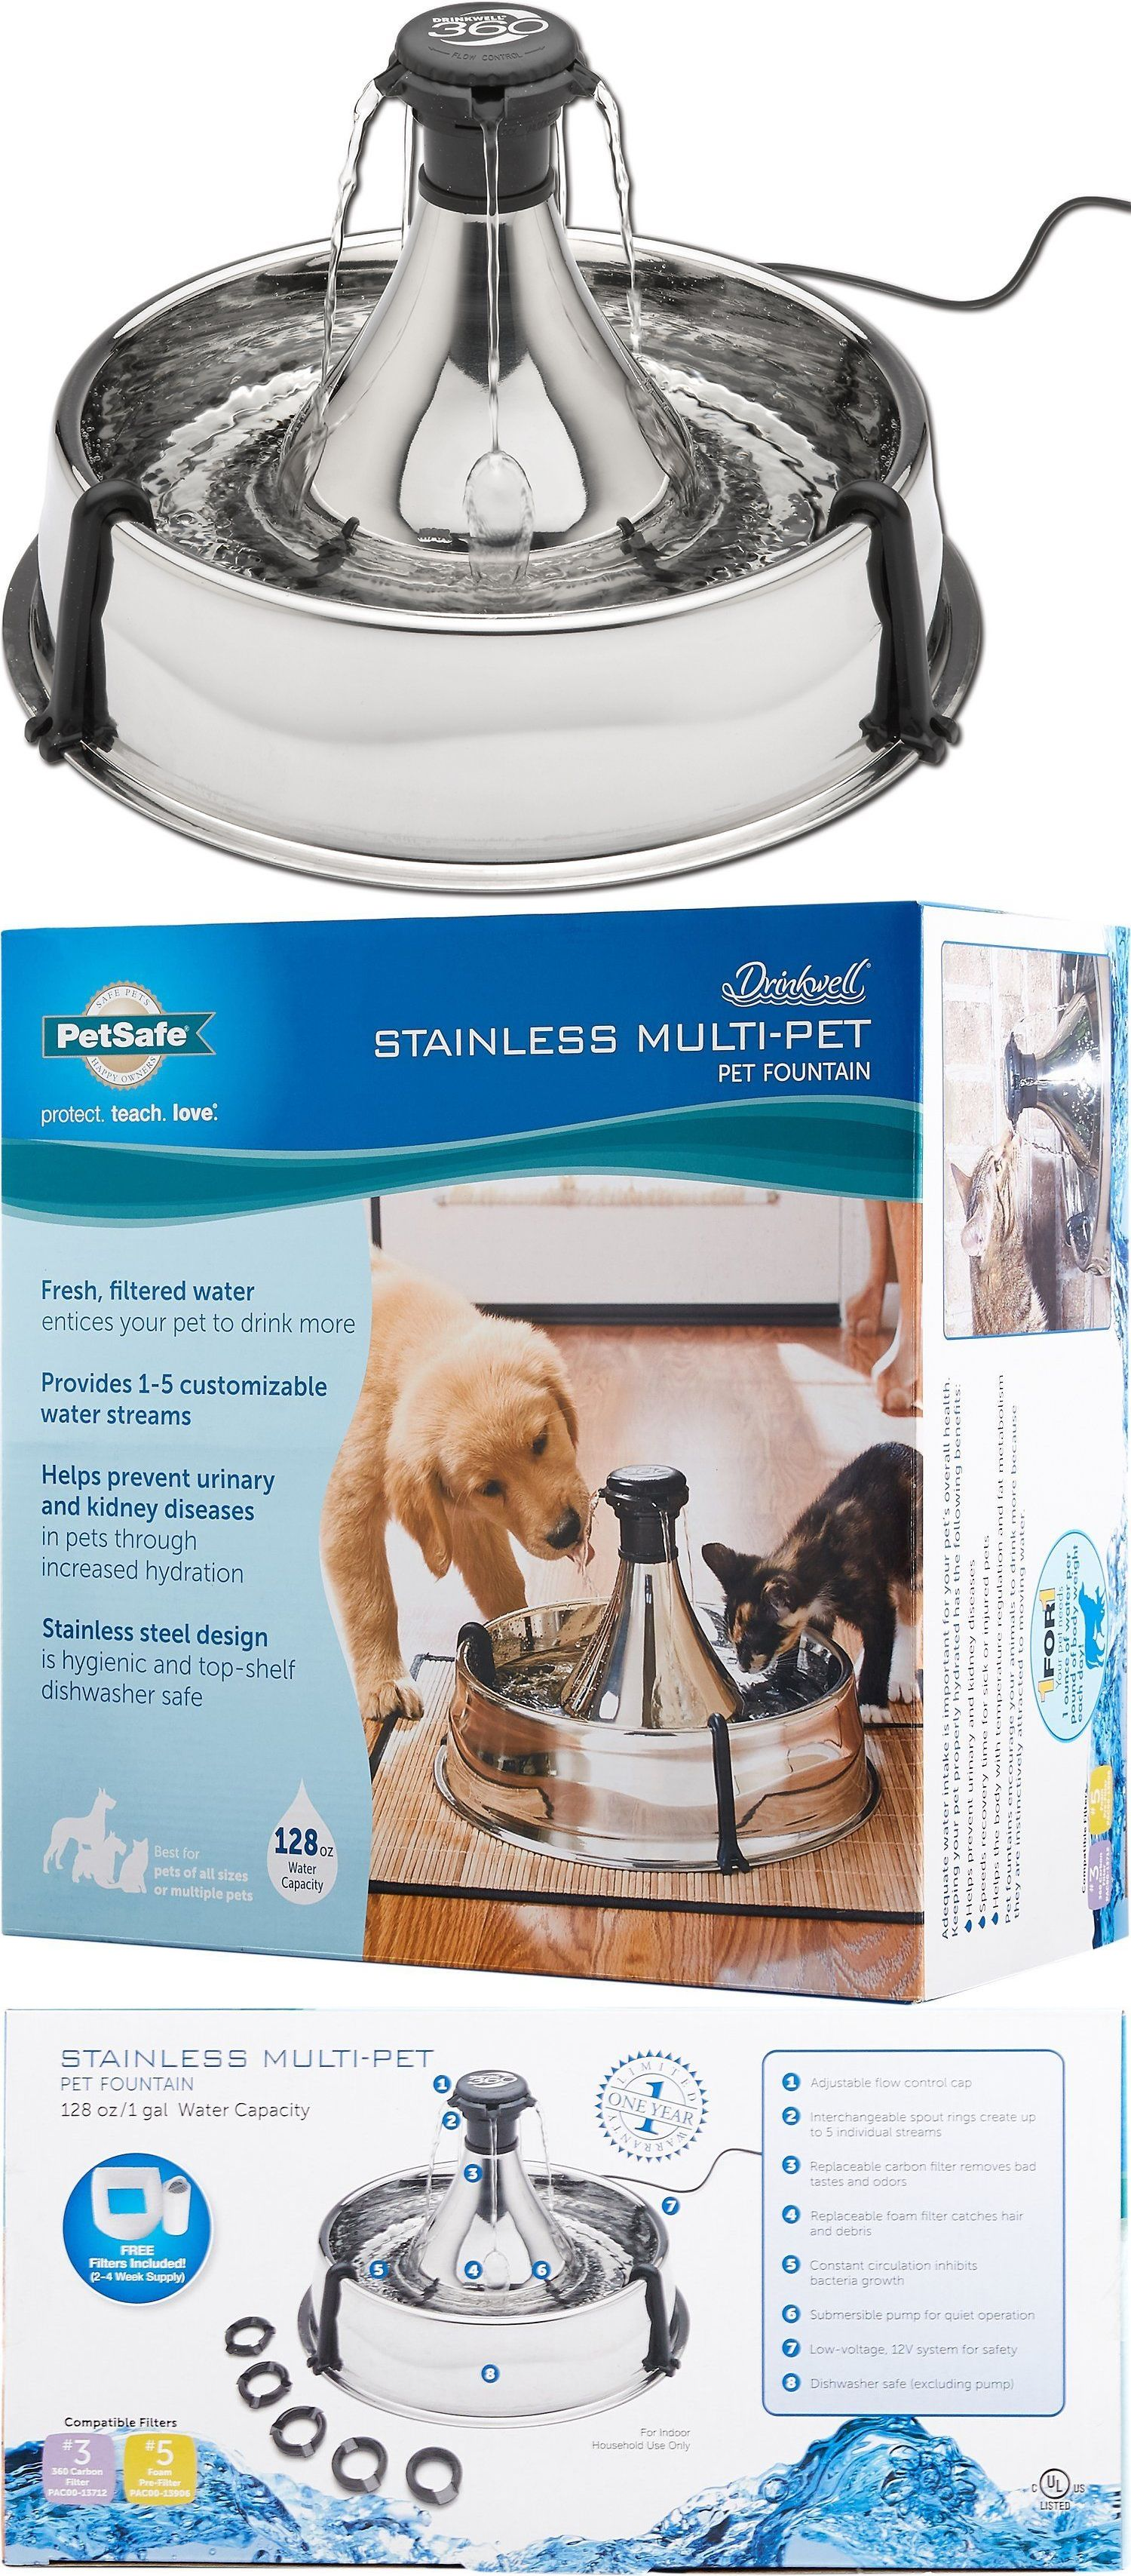 Dishes Feeders And Fountains 177789 Petsafe Drinkwell 360 Multi Pet Stainless Steel Fountain Pww00 13705 1 Gal Buy It No Pets Fountains